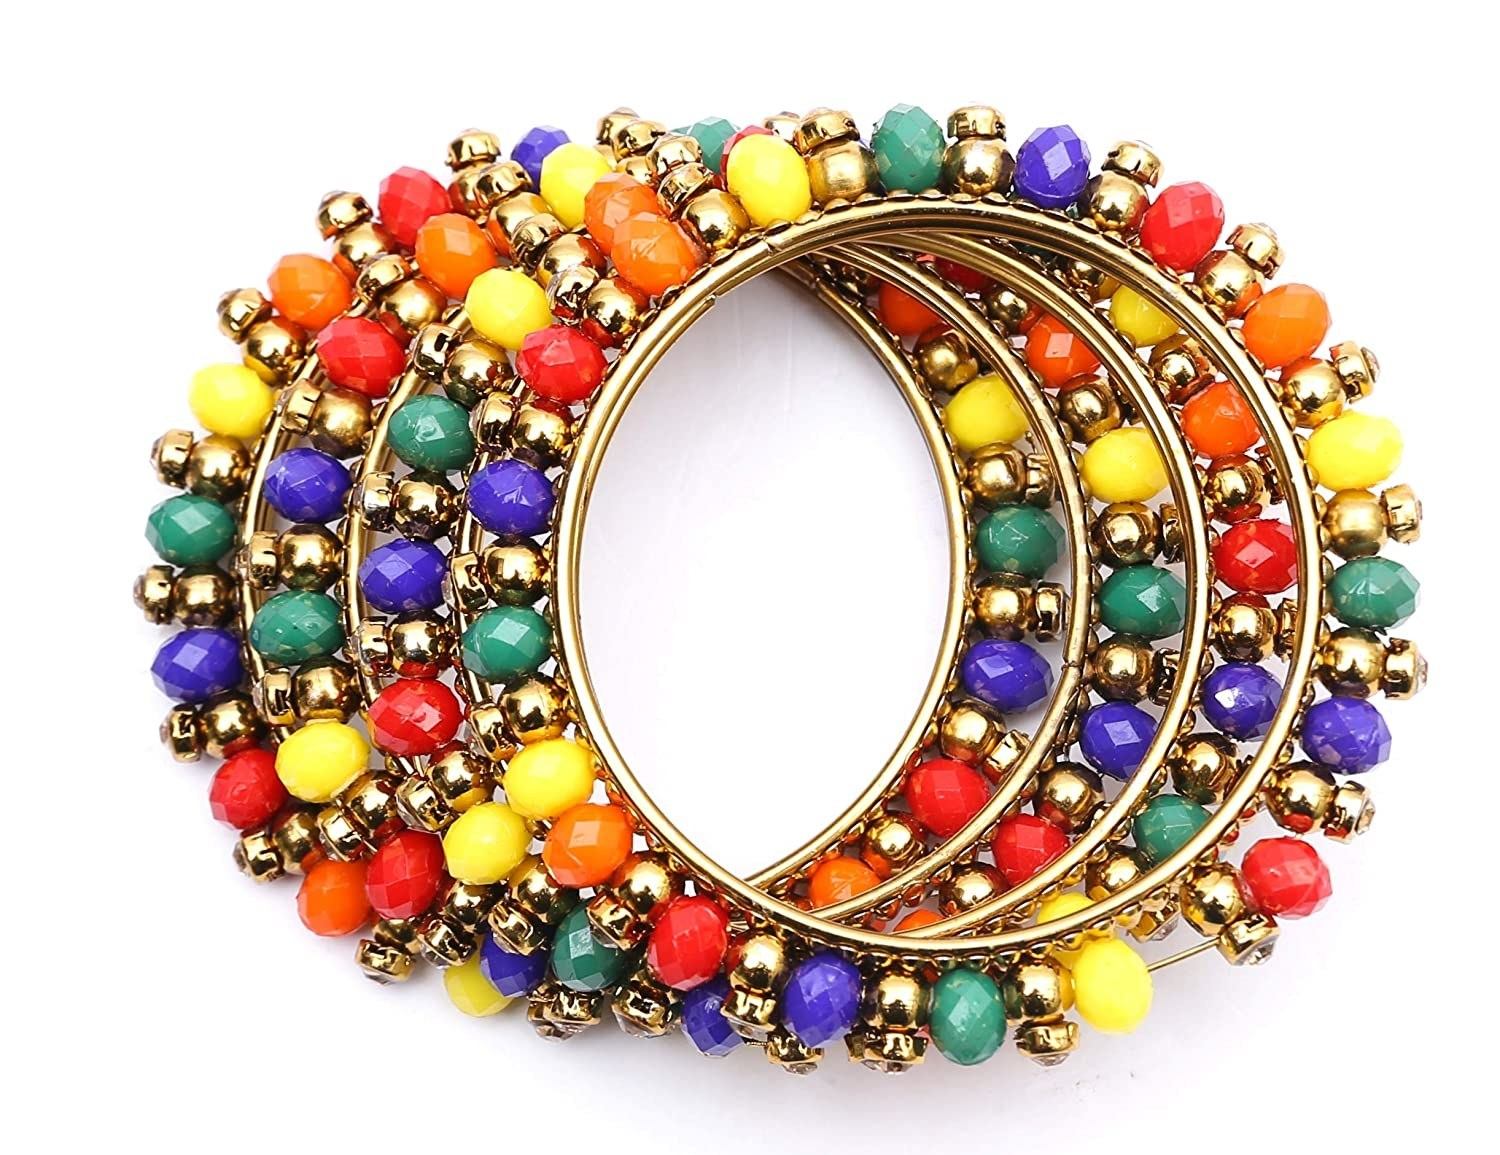 Bangles with colourful beads on the outside.